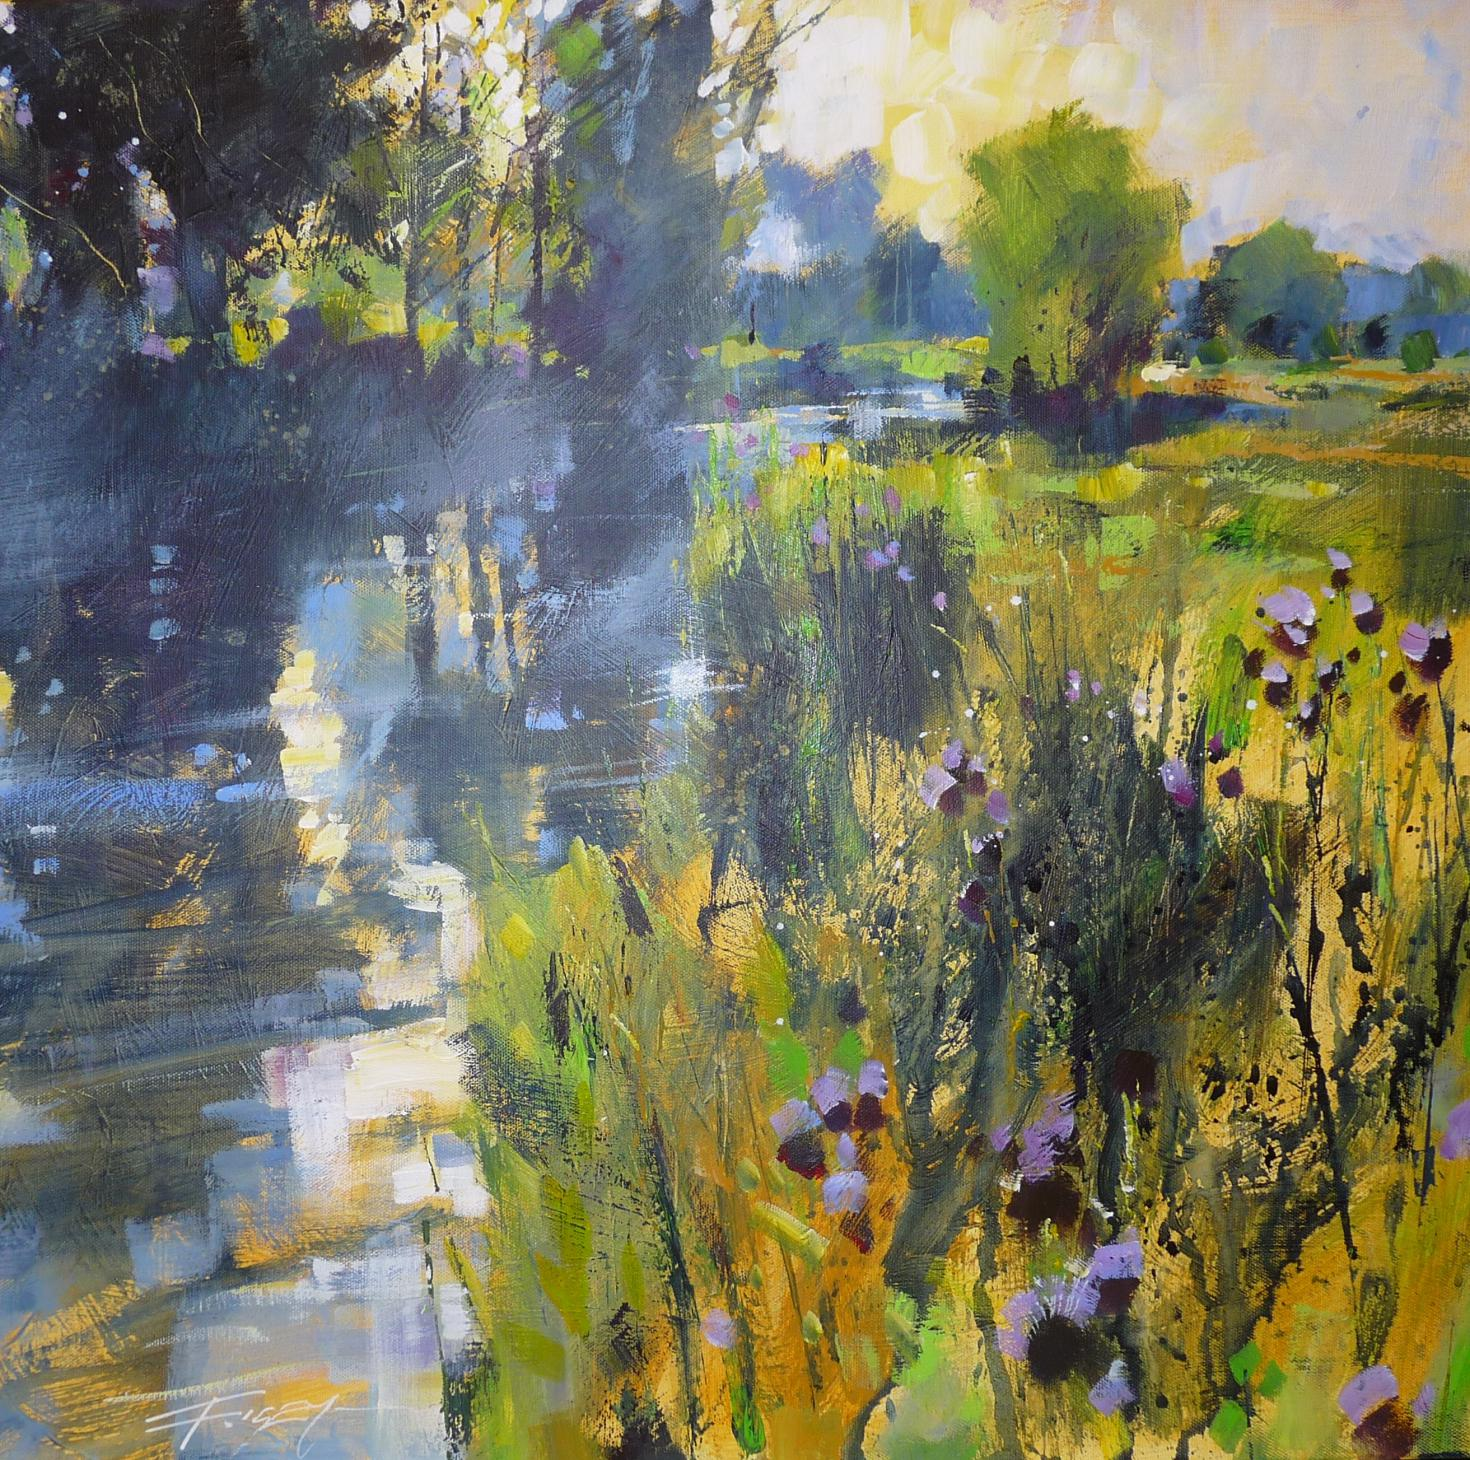 River and Summer mist by Chris Forsey